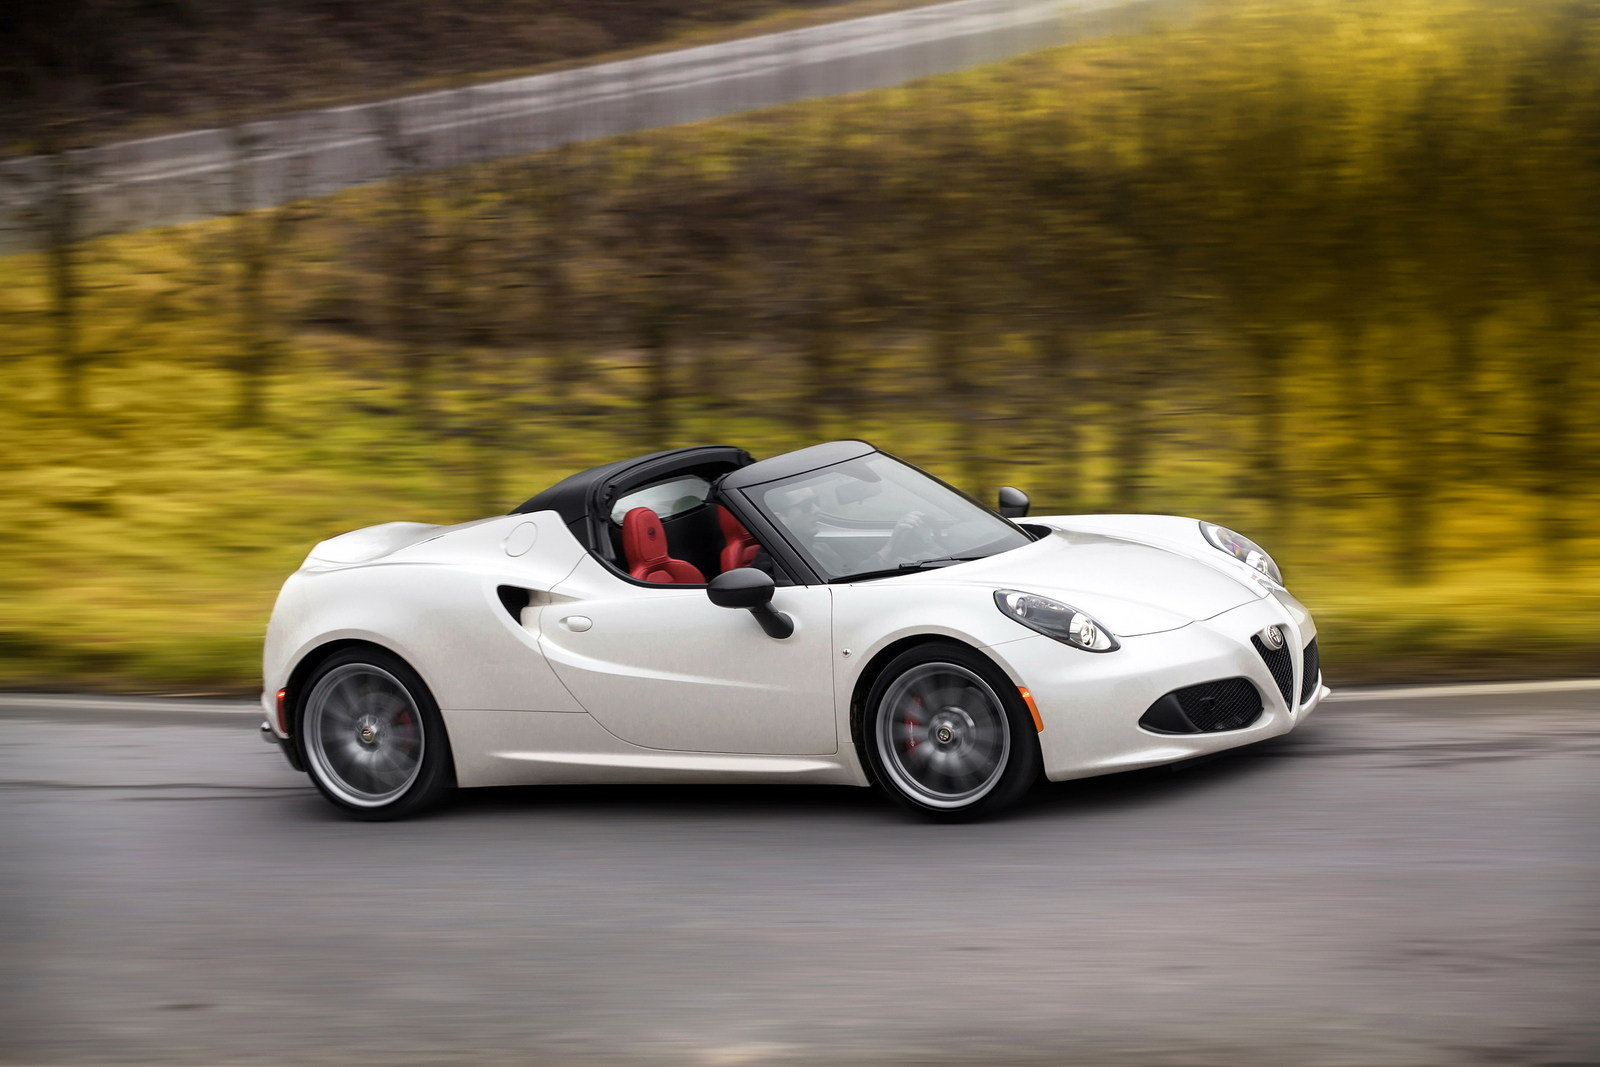 2016 alfa romeo 4c spider picture 610410 car review top speed. Black Bedroom Furniture Sets. Home Design Ideas